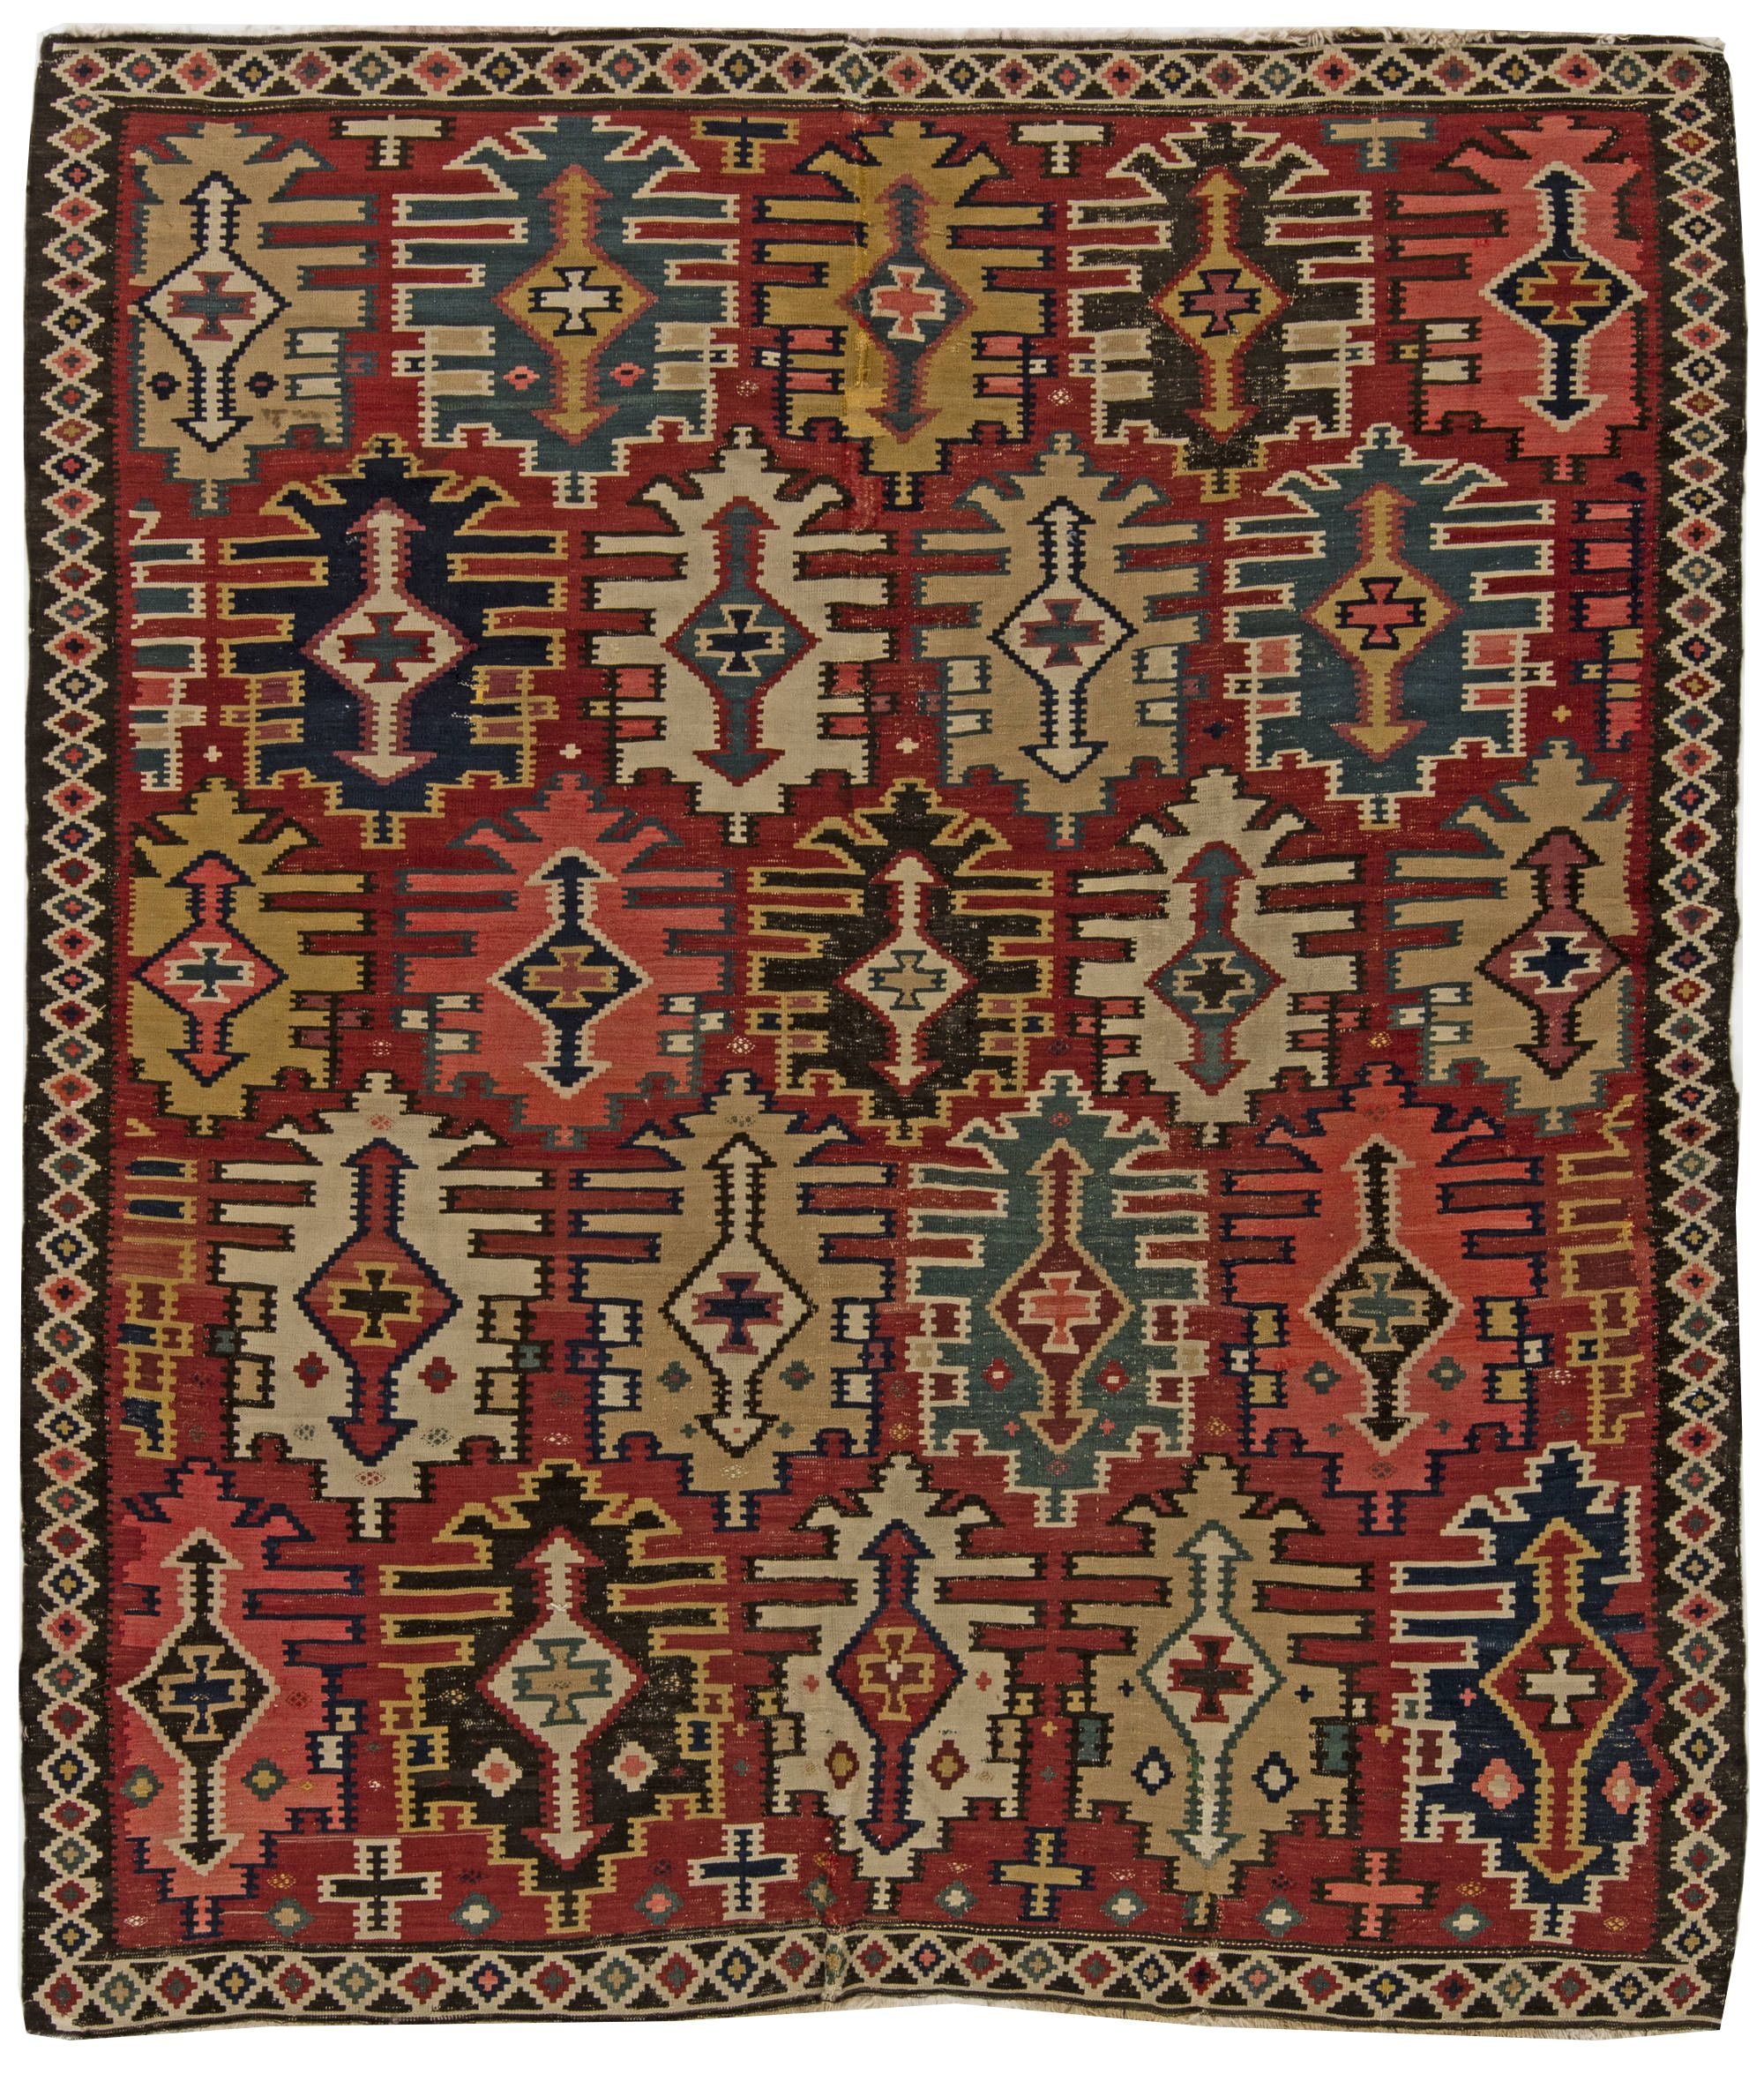 Vintage Turkish Kilim Rug BB6268 By Doris Leslie Blau